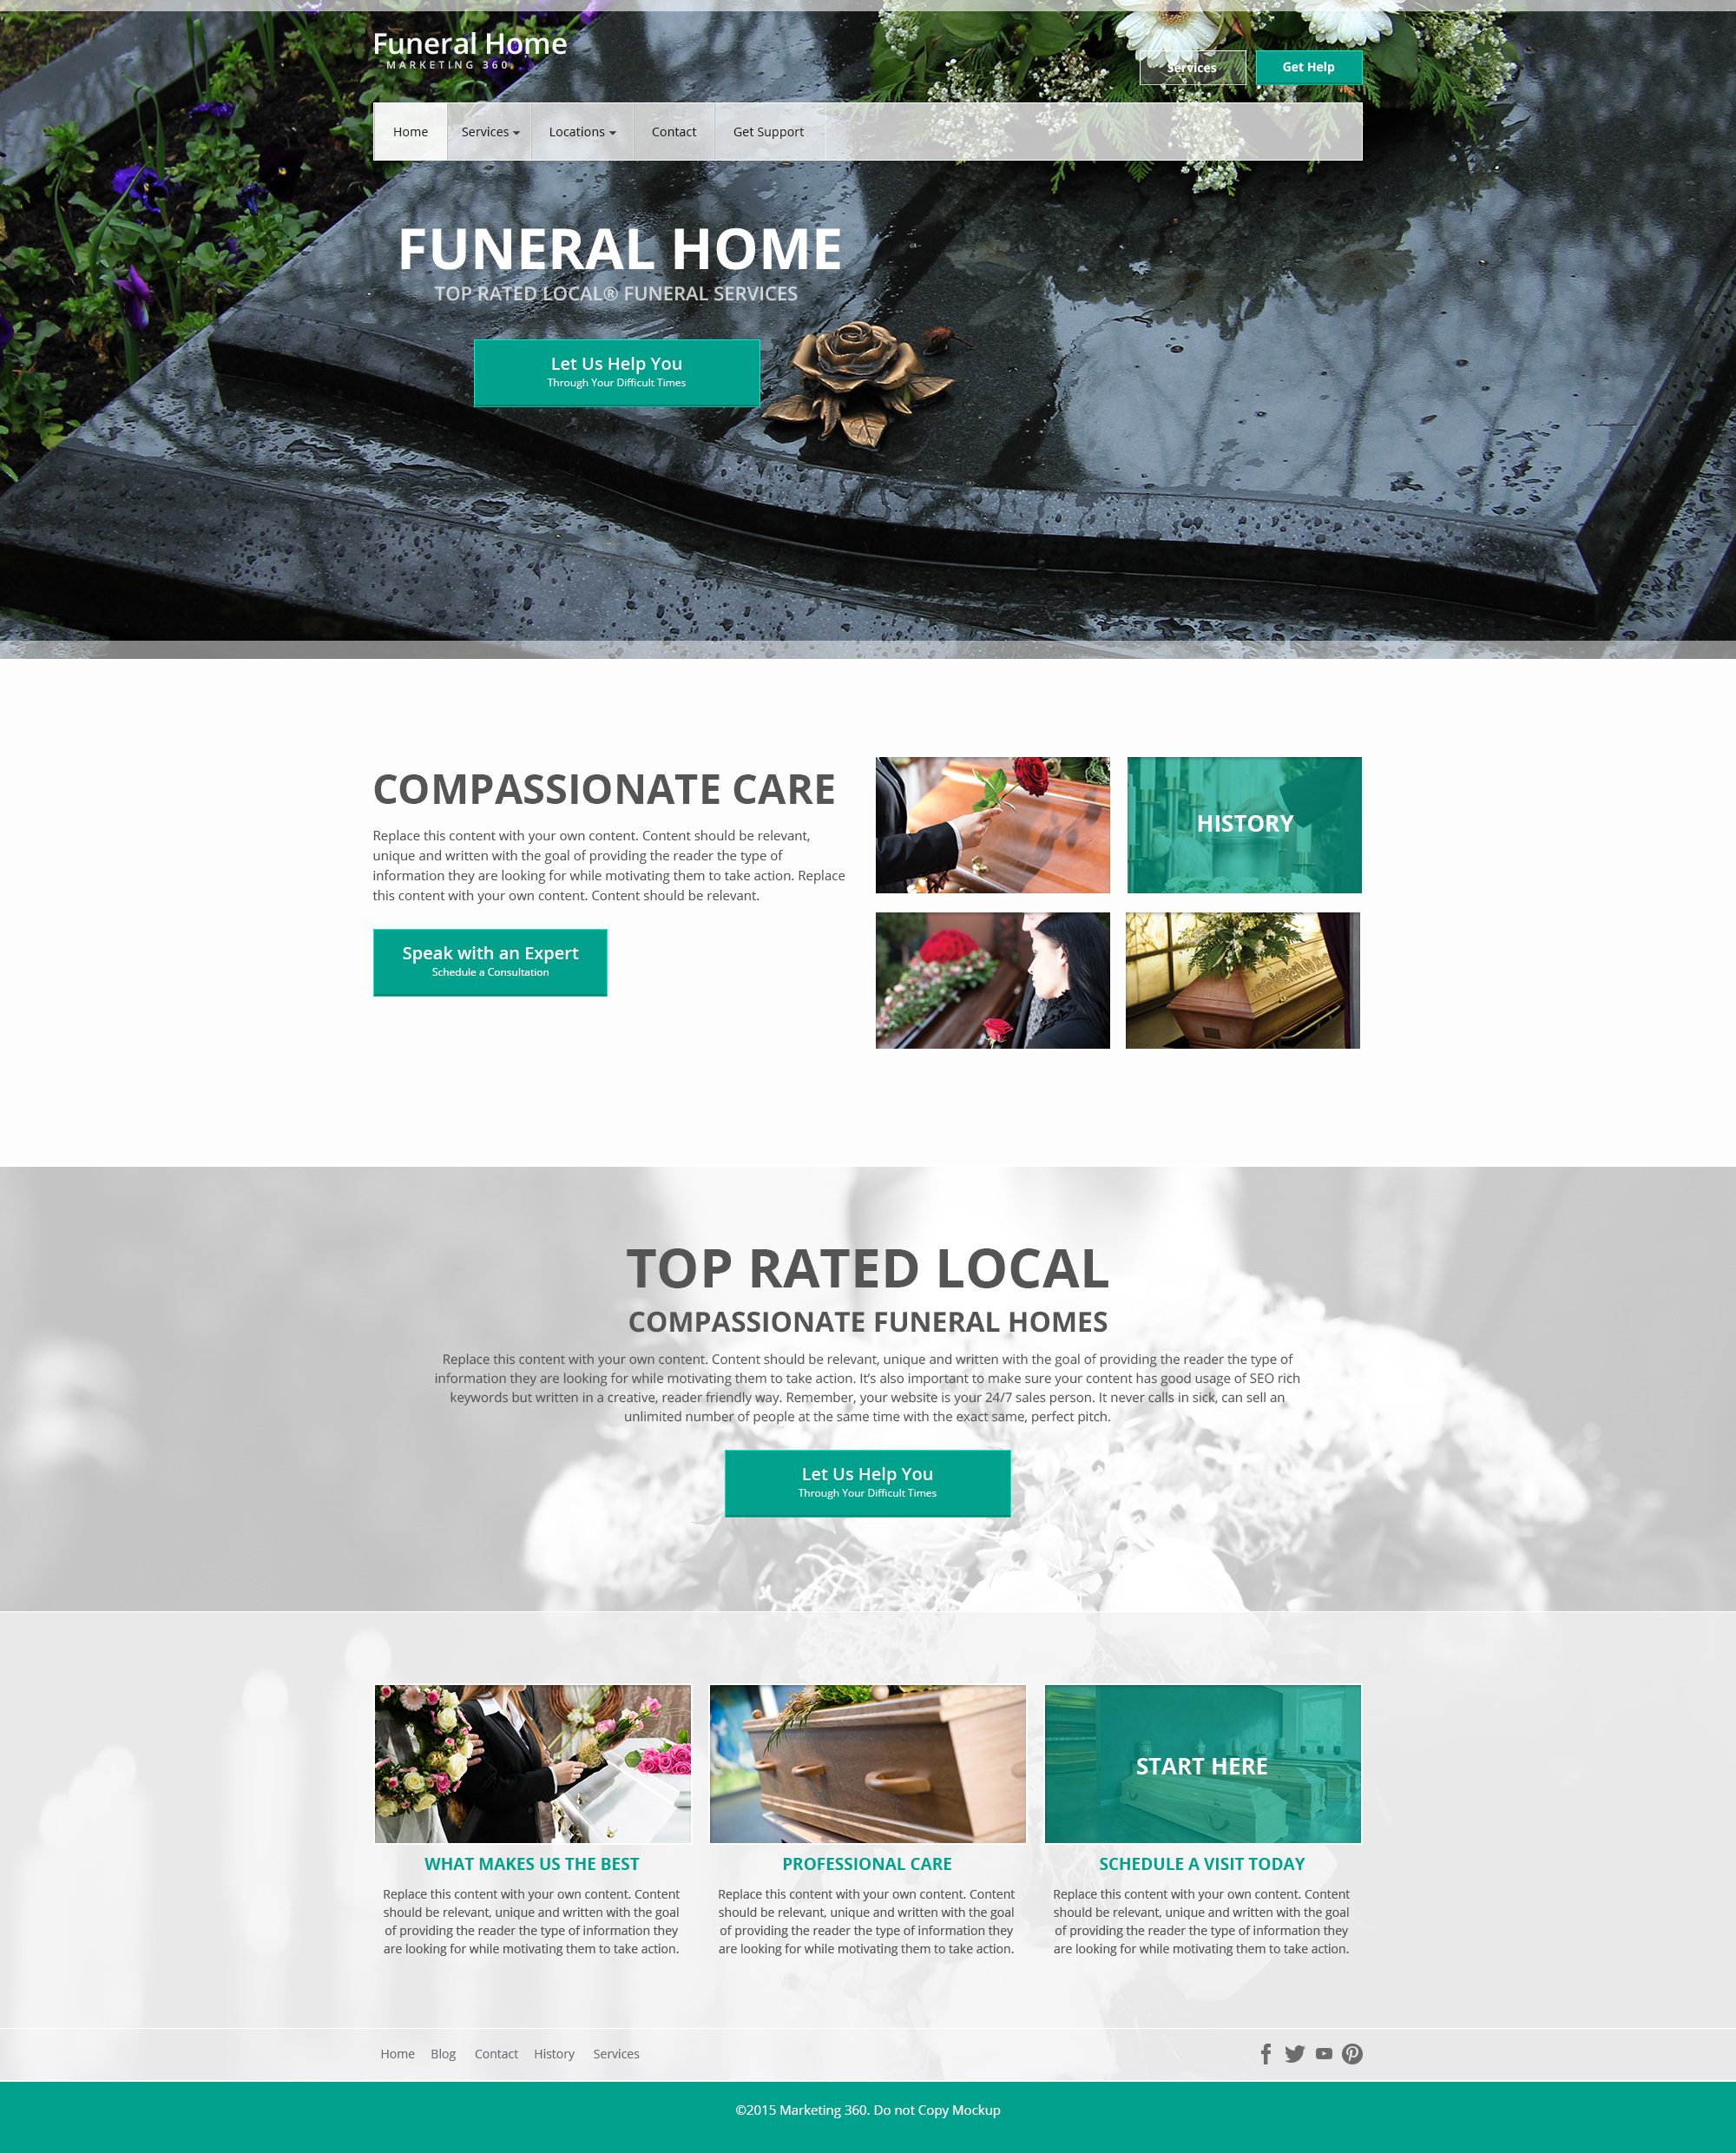 funeral home website templates - mobile responsive designs